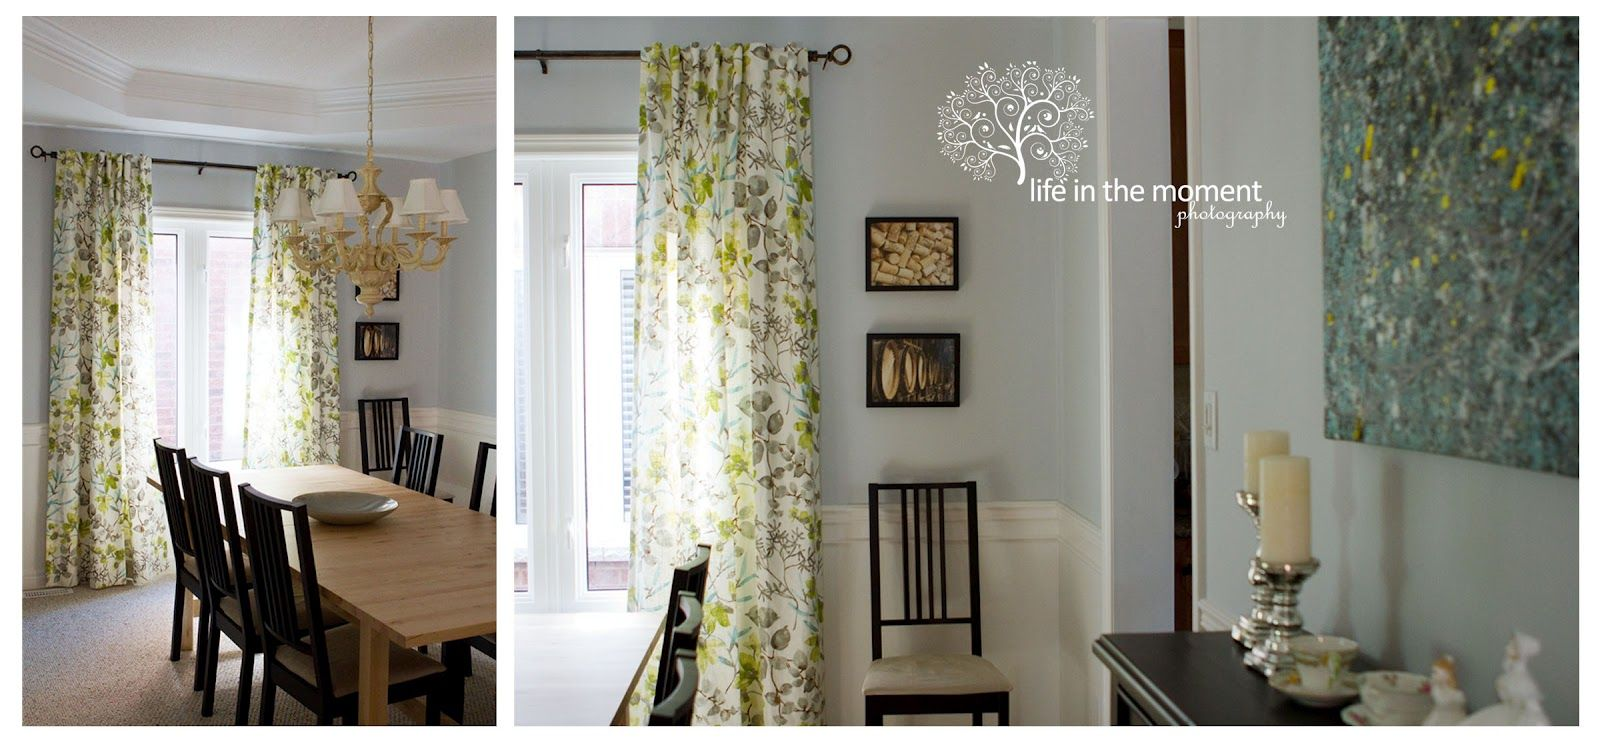 office drapes. life in the moment photography custom curtains gazebo cloud office drapes v